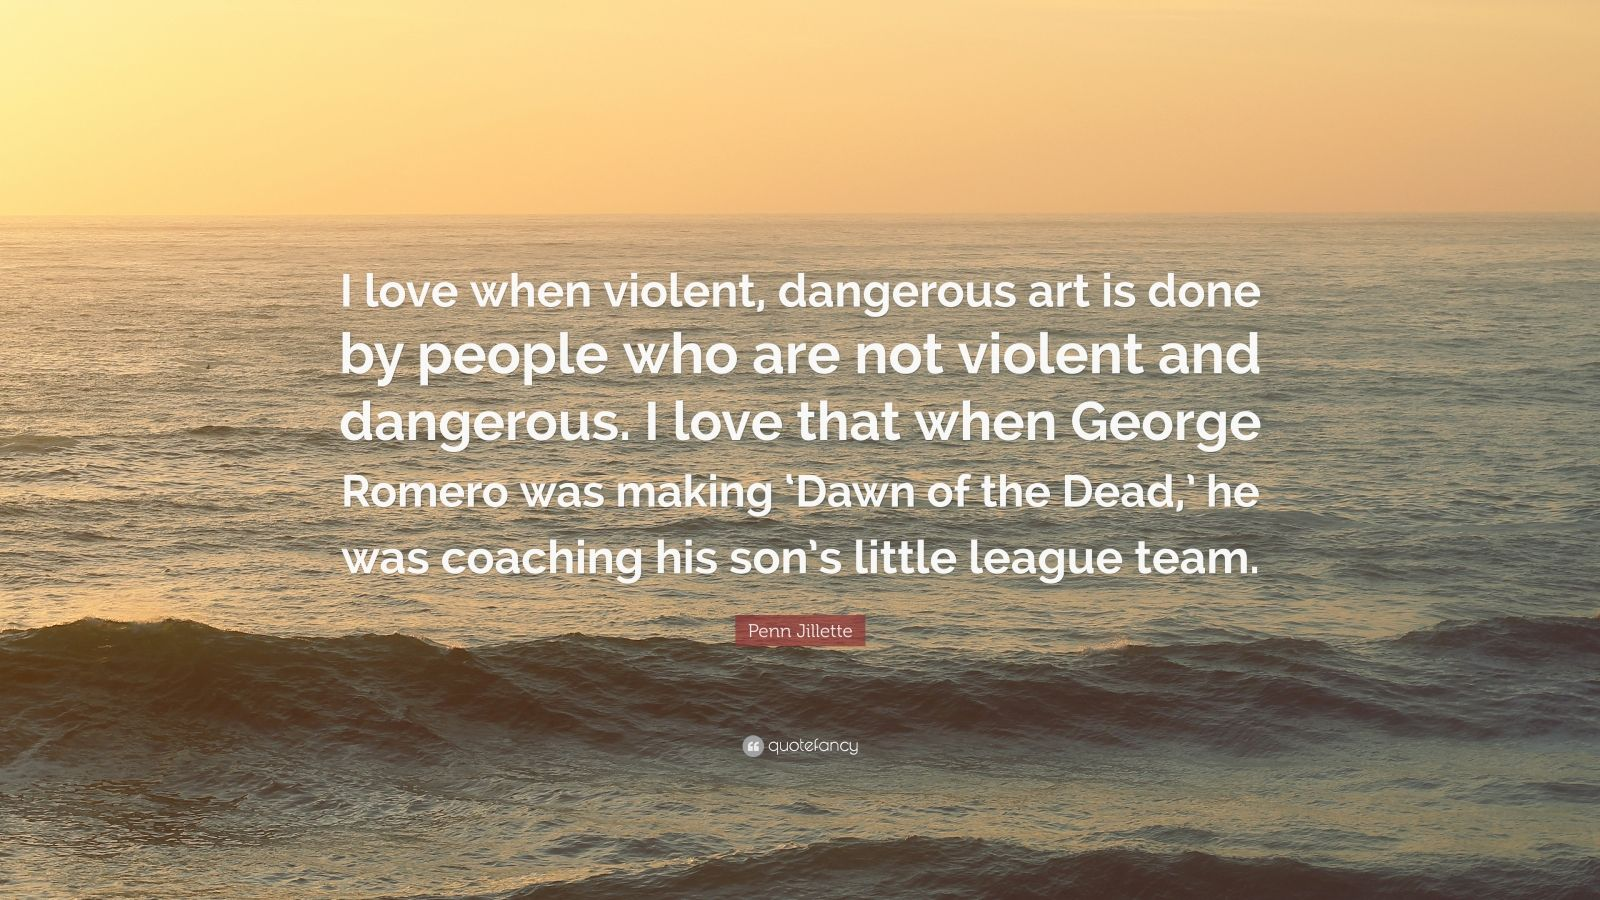 """Penn Jillette Quote: """"I love when violent, dangerous art is done by people who are not violent and dangerous. I love that when George Romero was making 'Dawn of the Dead,' he was coaching his son's little league team."""""""